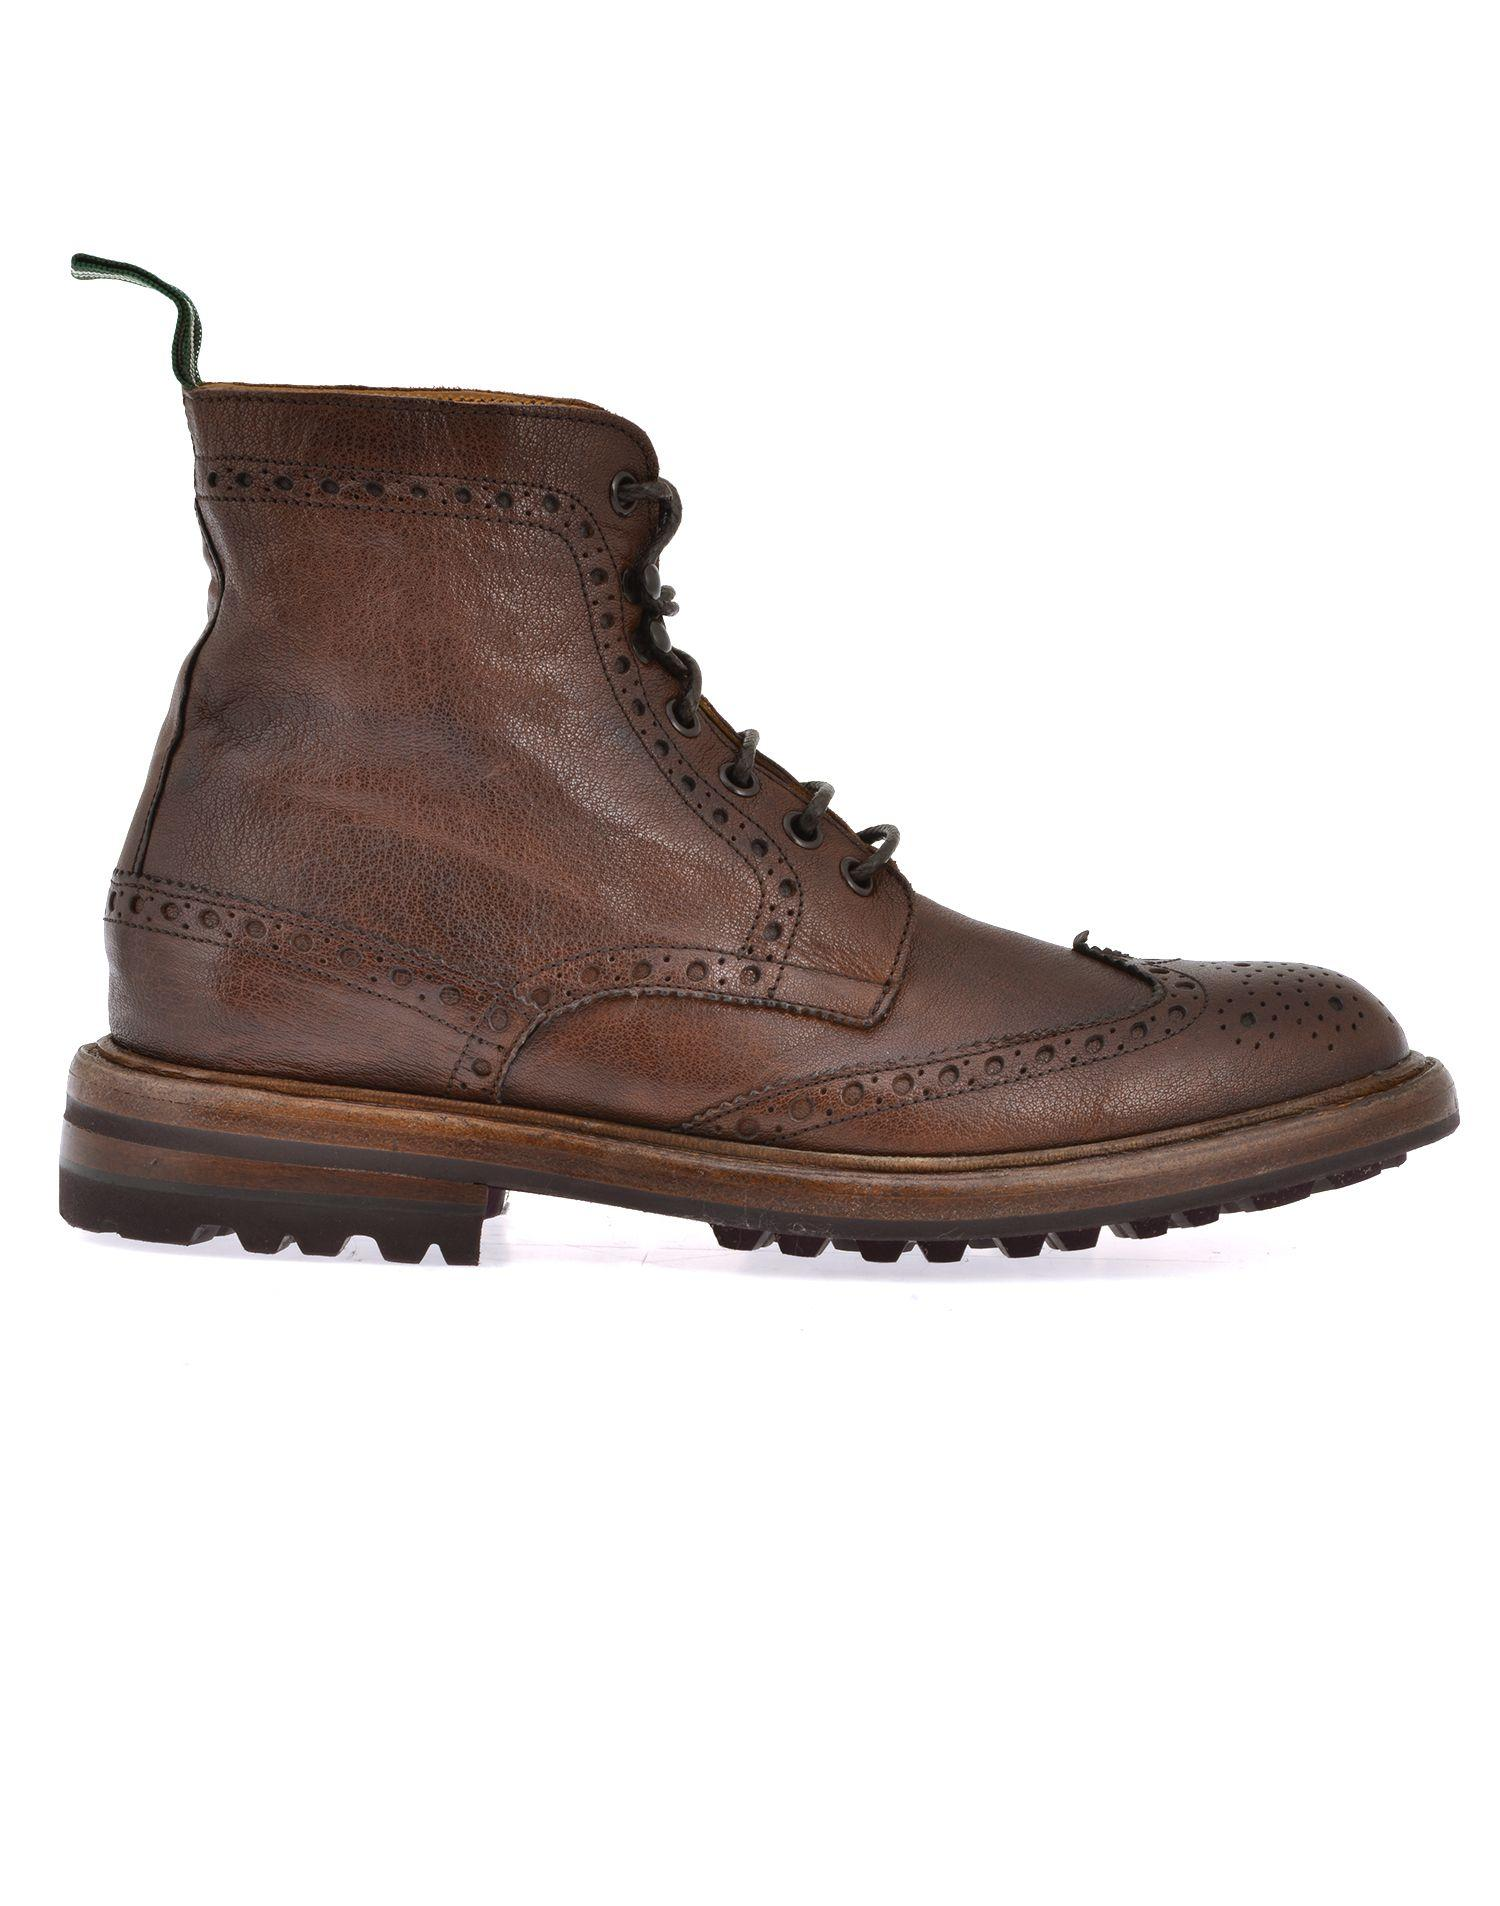 Green George Leather Army Boot In Brown